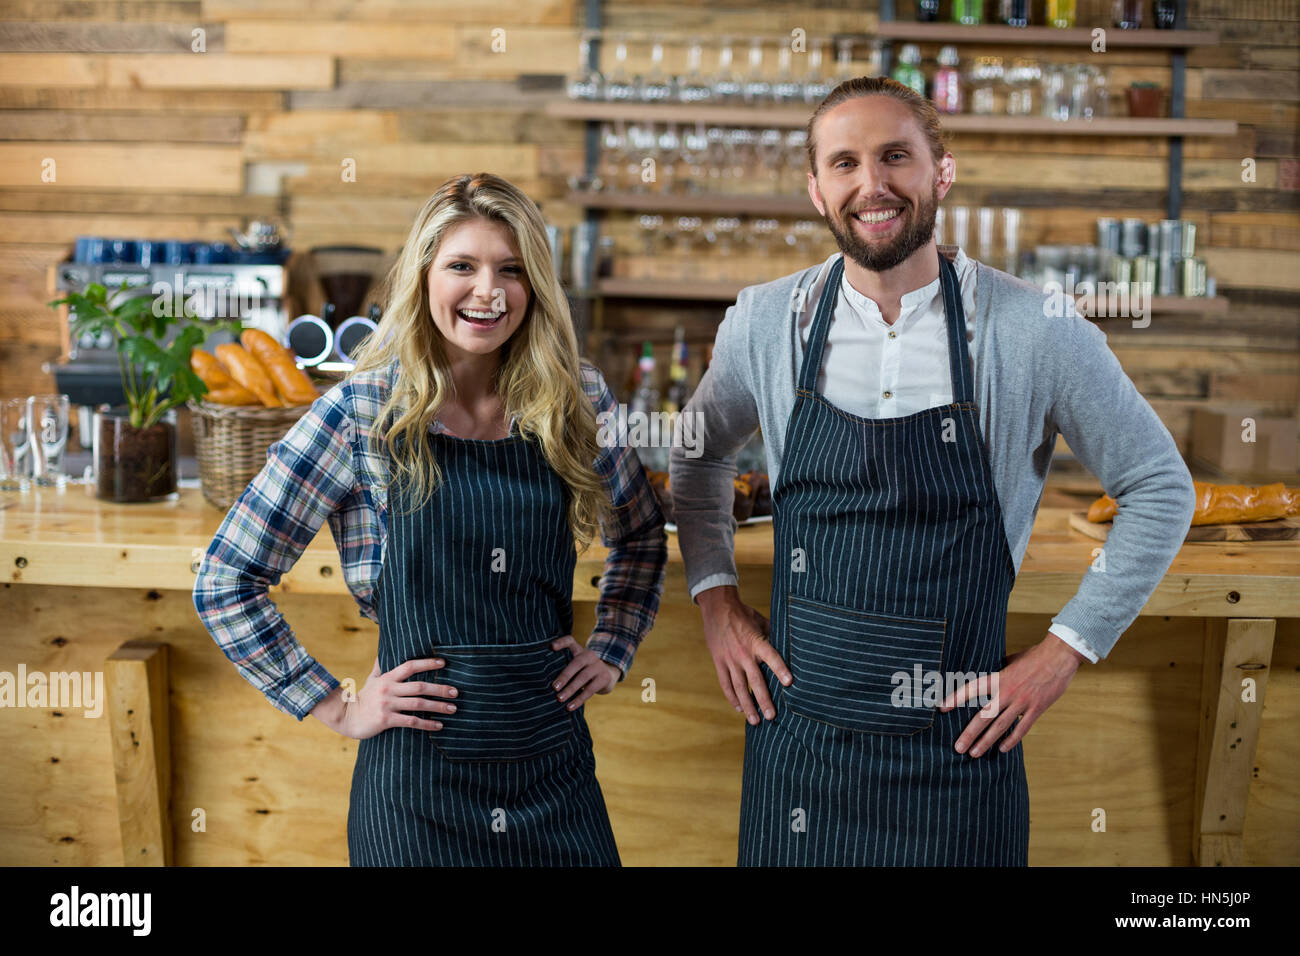 Portrait of waiter and waitress standing with hand on hip at counter in café - Stock Image